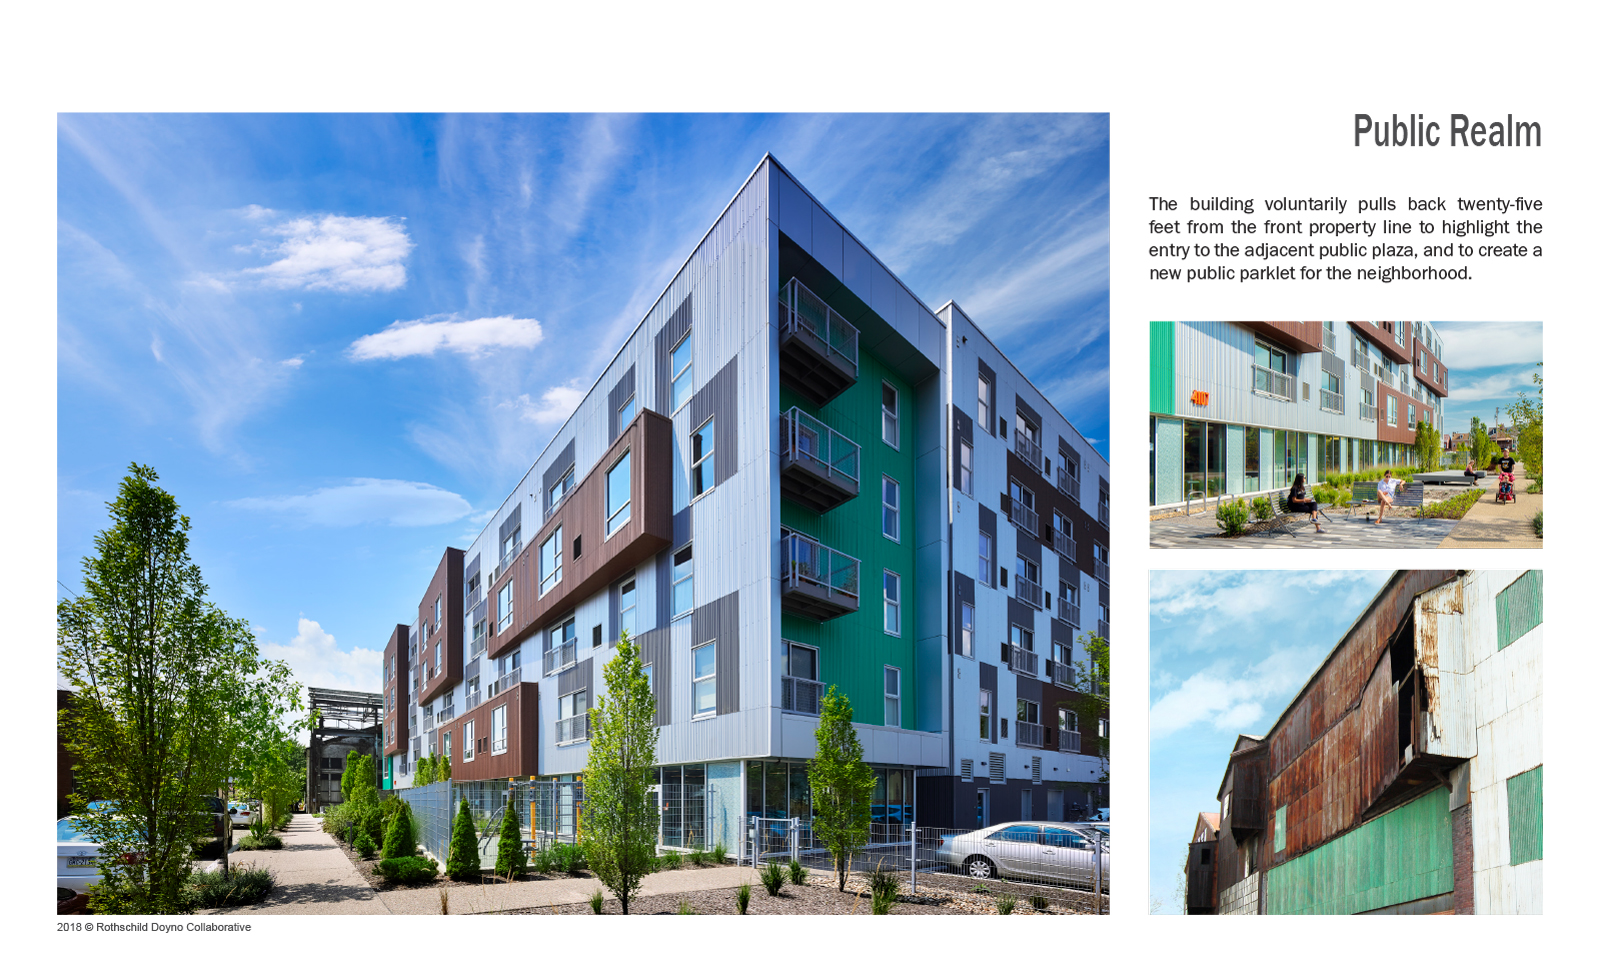 The Foundry at 41st - Rothschild Doyno Collaborative